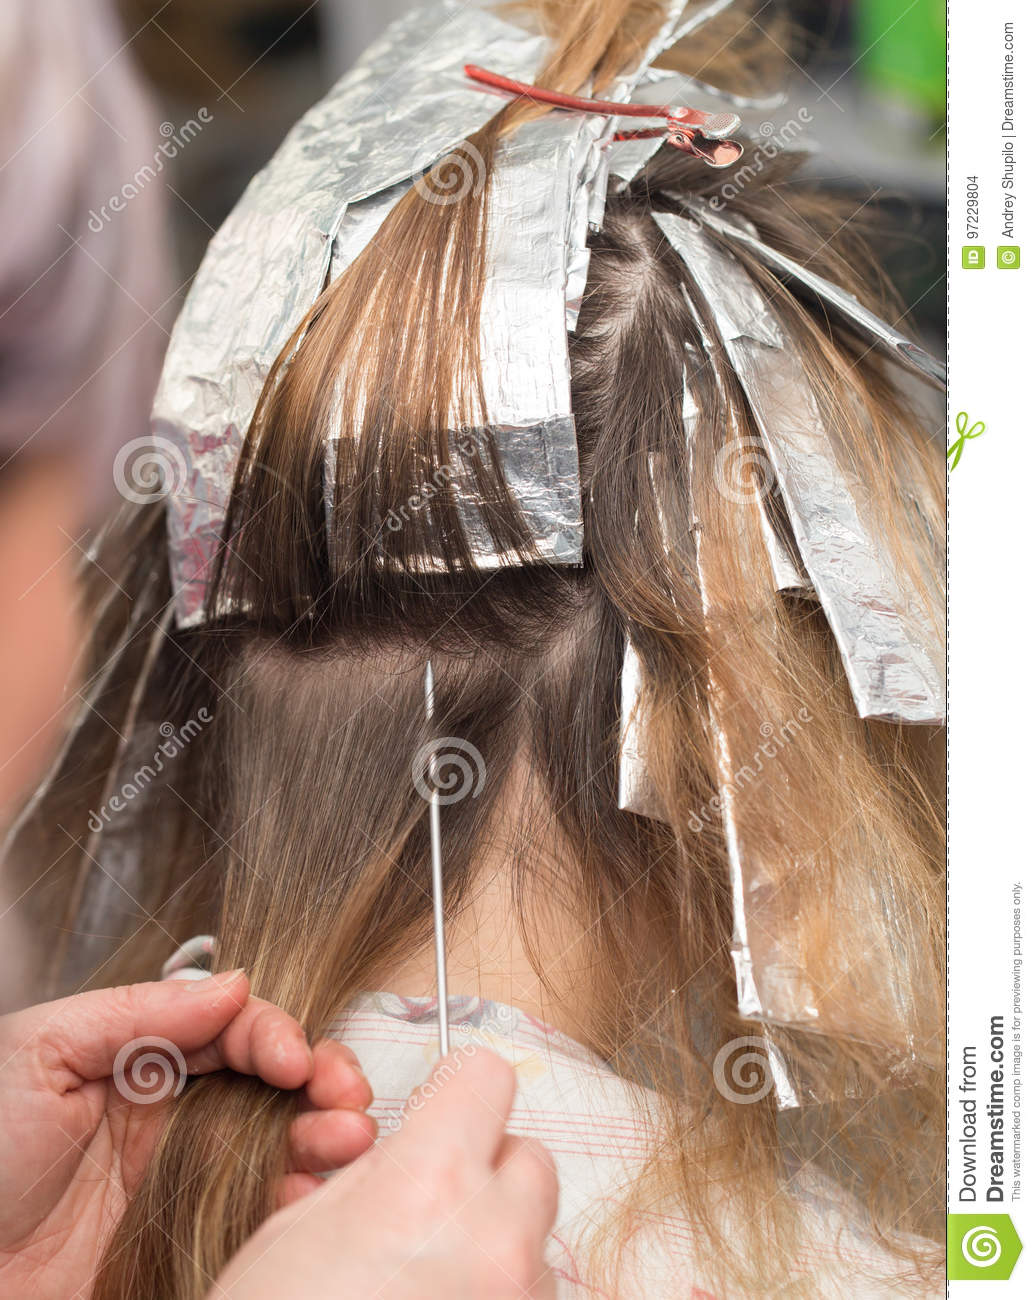 Weave Hair In Beauty Salon Stock Photo Image Of Hair 97229804